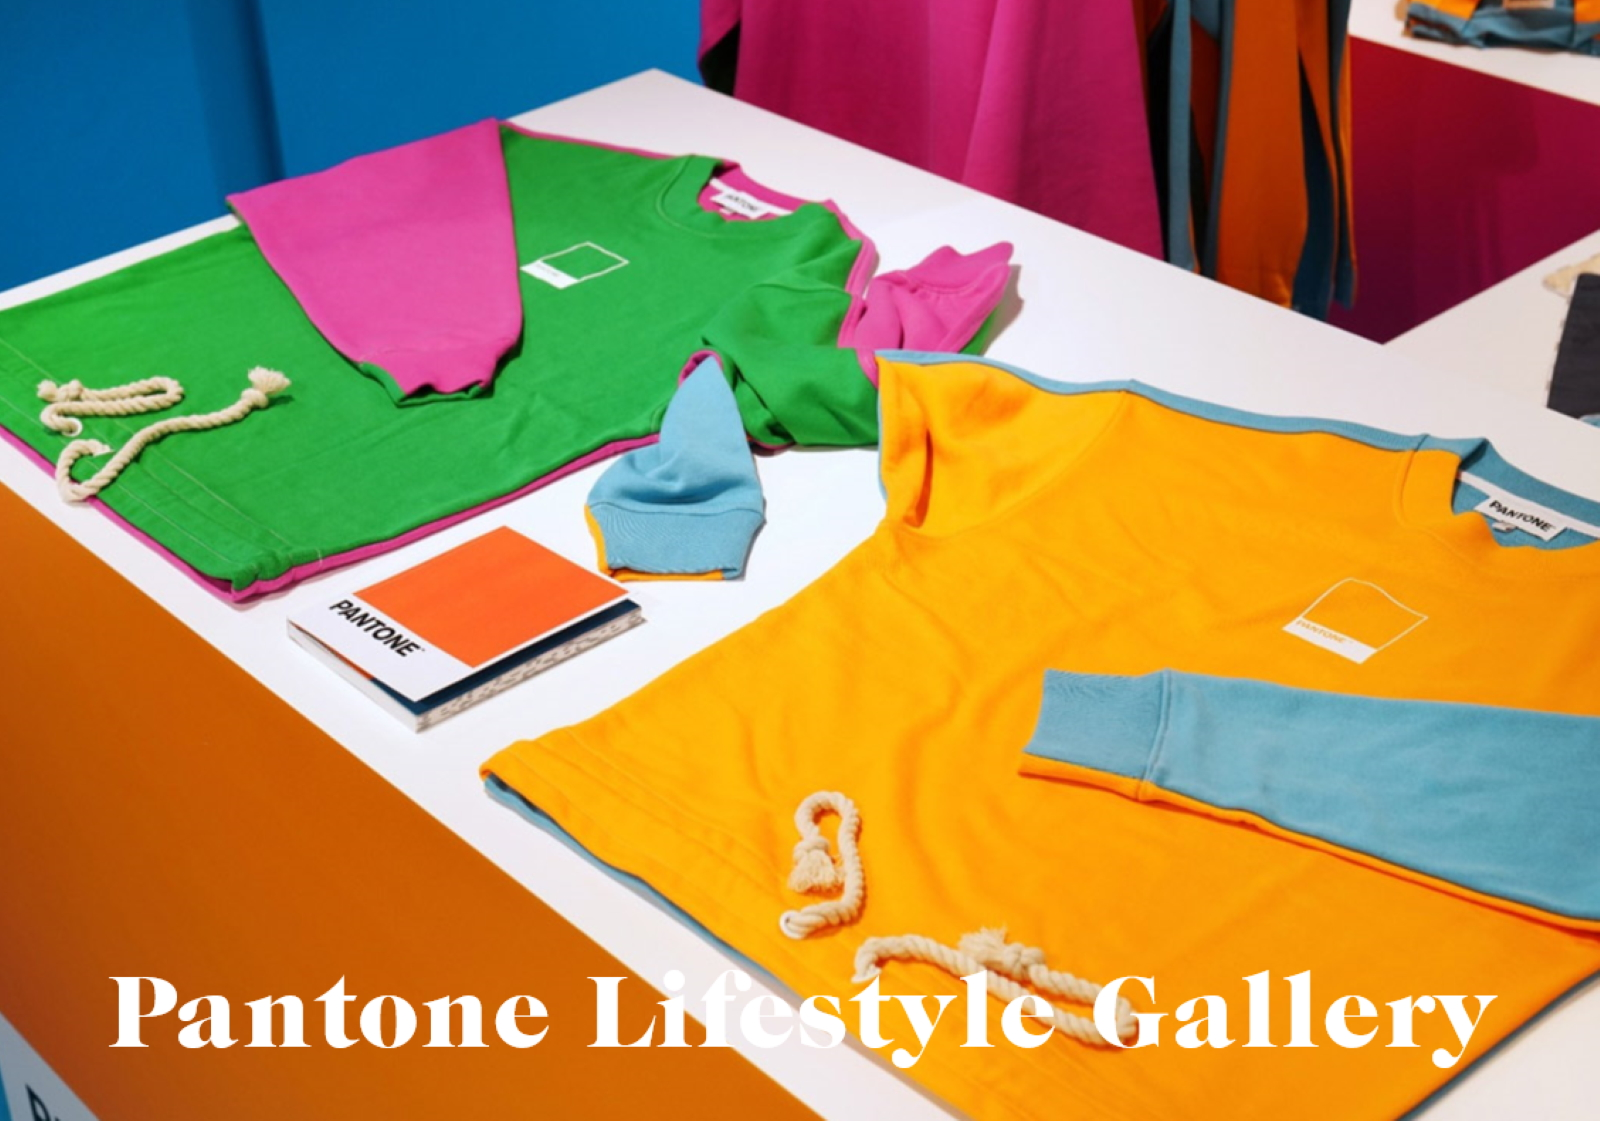 Pantone lifestyle gallery innovation tour missions mmm 0